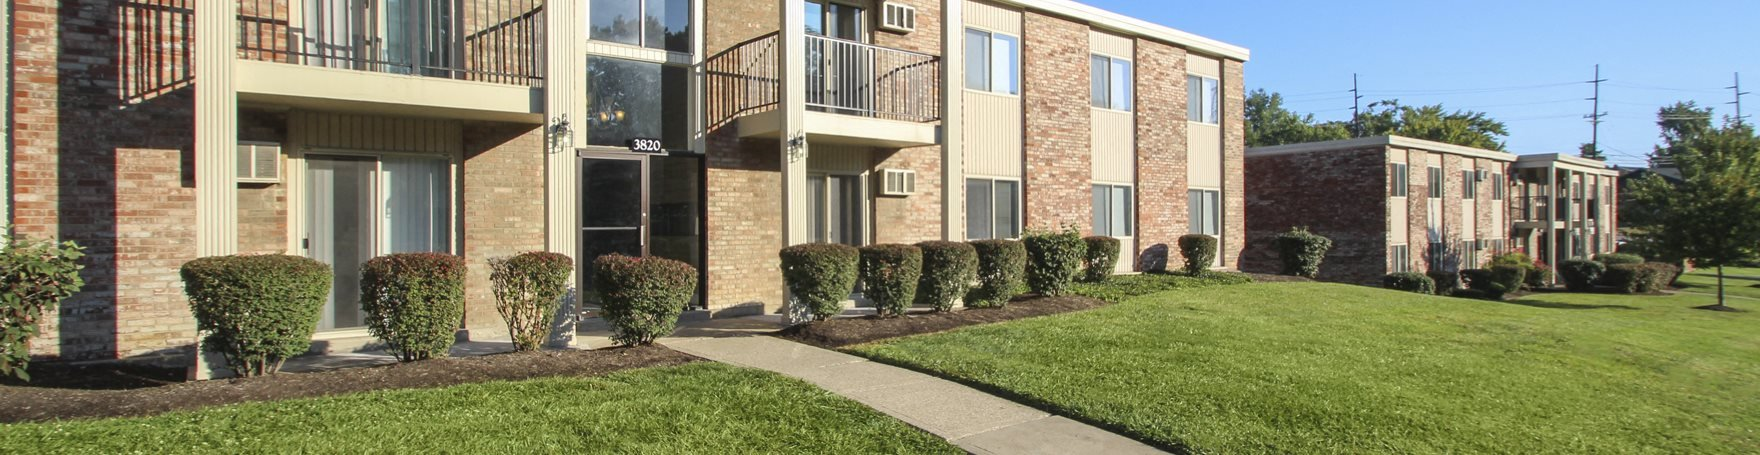 This is a photo of building exteriors at Blue Grass Manor Apartments in Erlanger, KY.